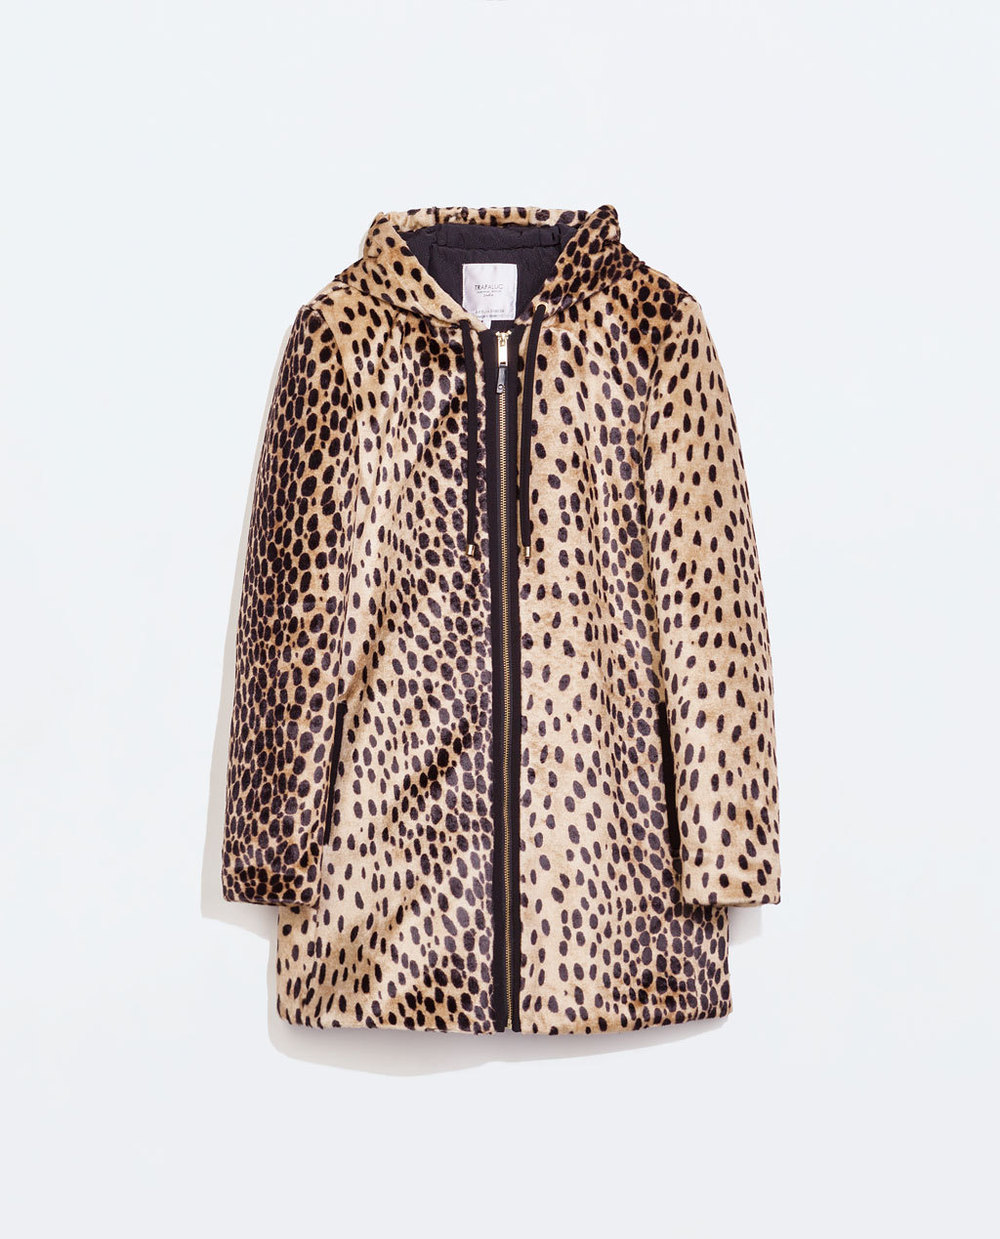 Original ZA 2015 Women Winter Leopard Faux Fur Padded Cotton Hooded Quilted Lining Jacket Long Parkas Coat 1255/294 factory outlets 2014 new winter in europe and america women british style stitching cotton quilted jacket short parkas coat